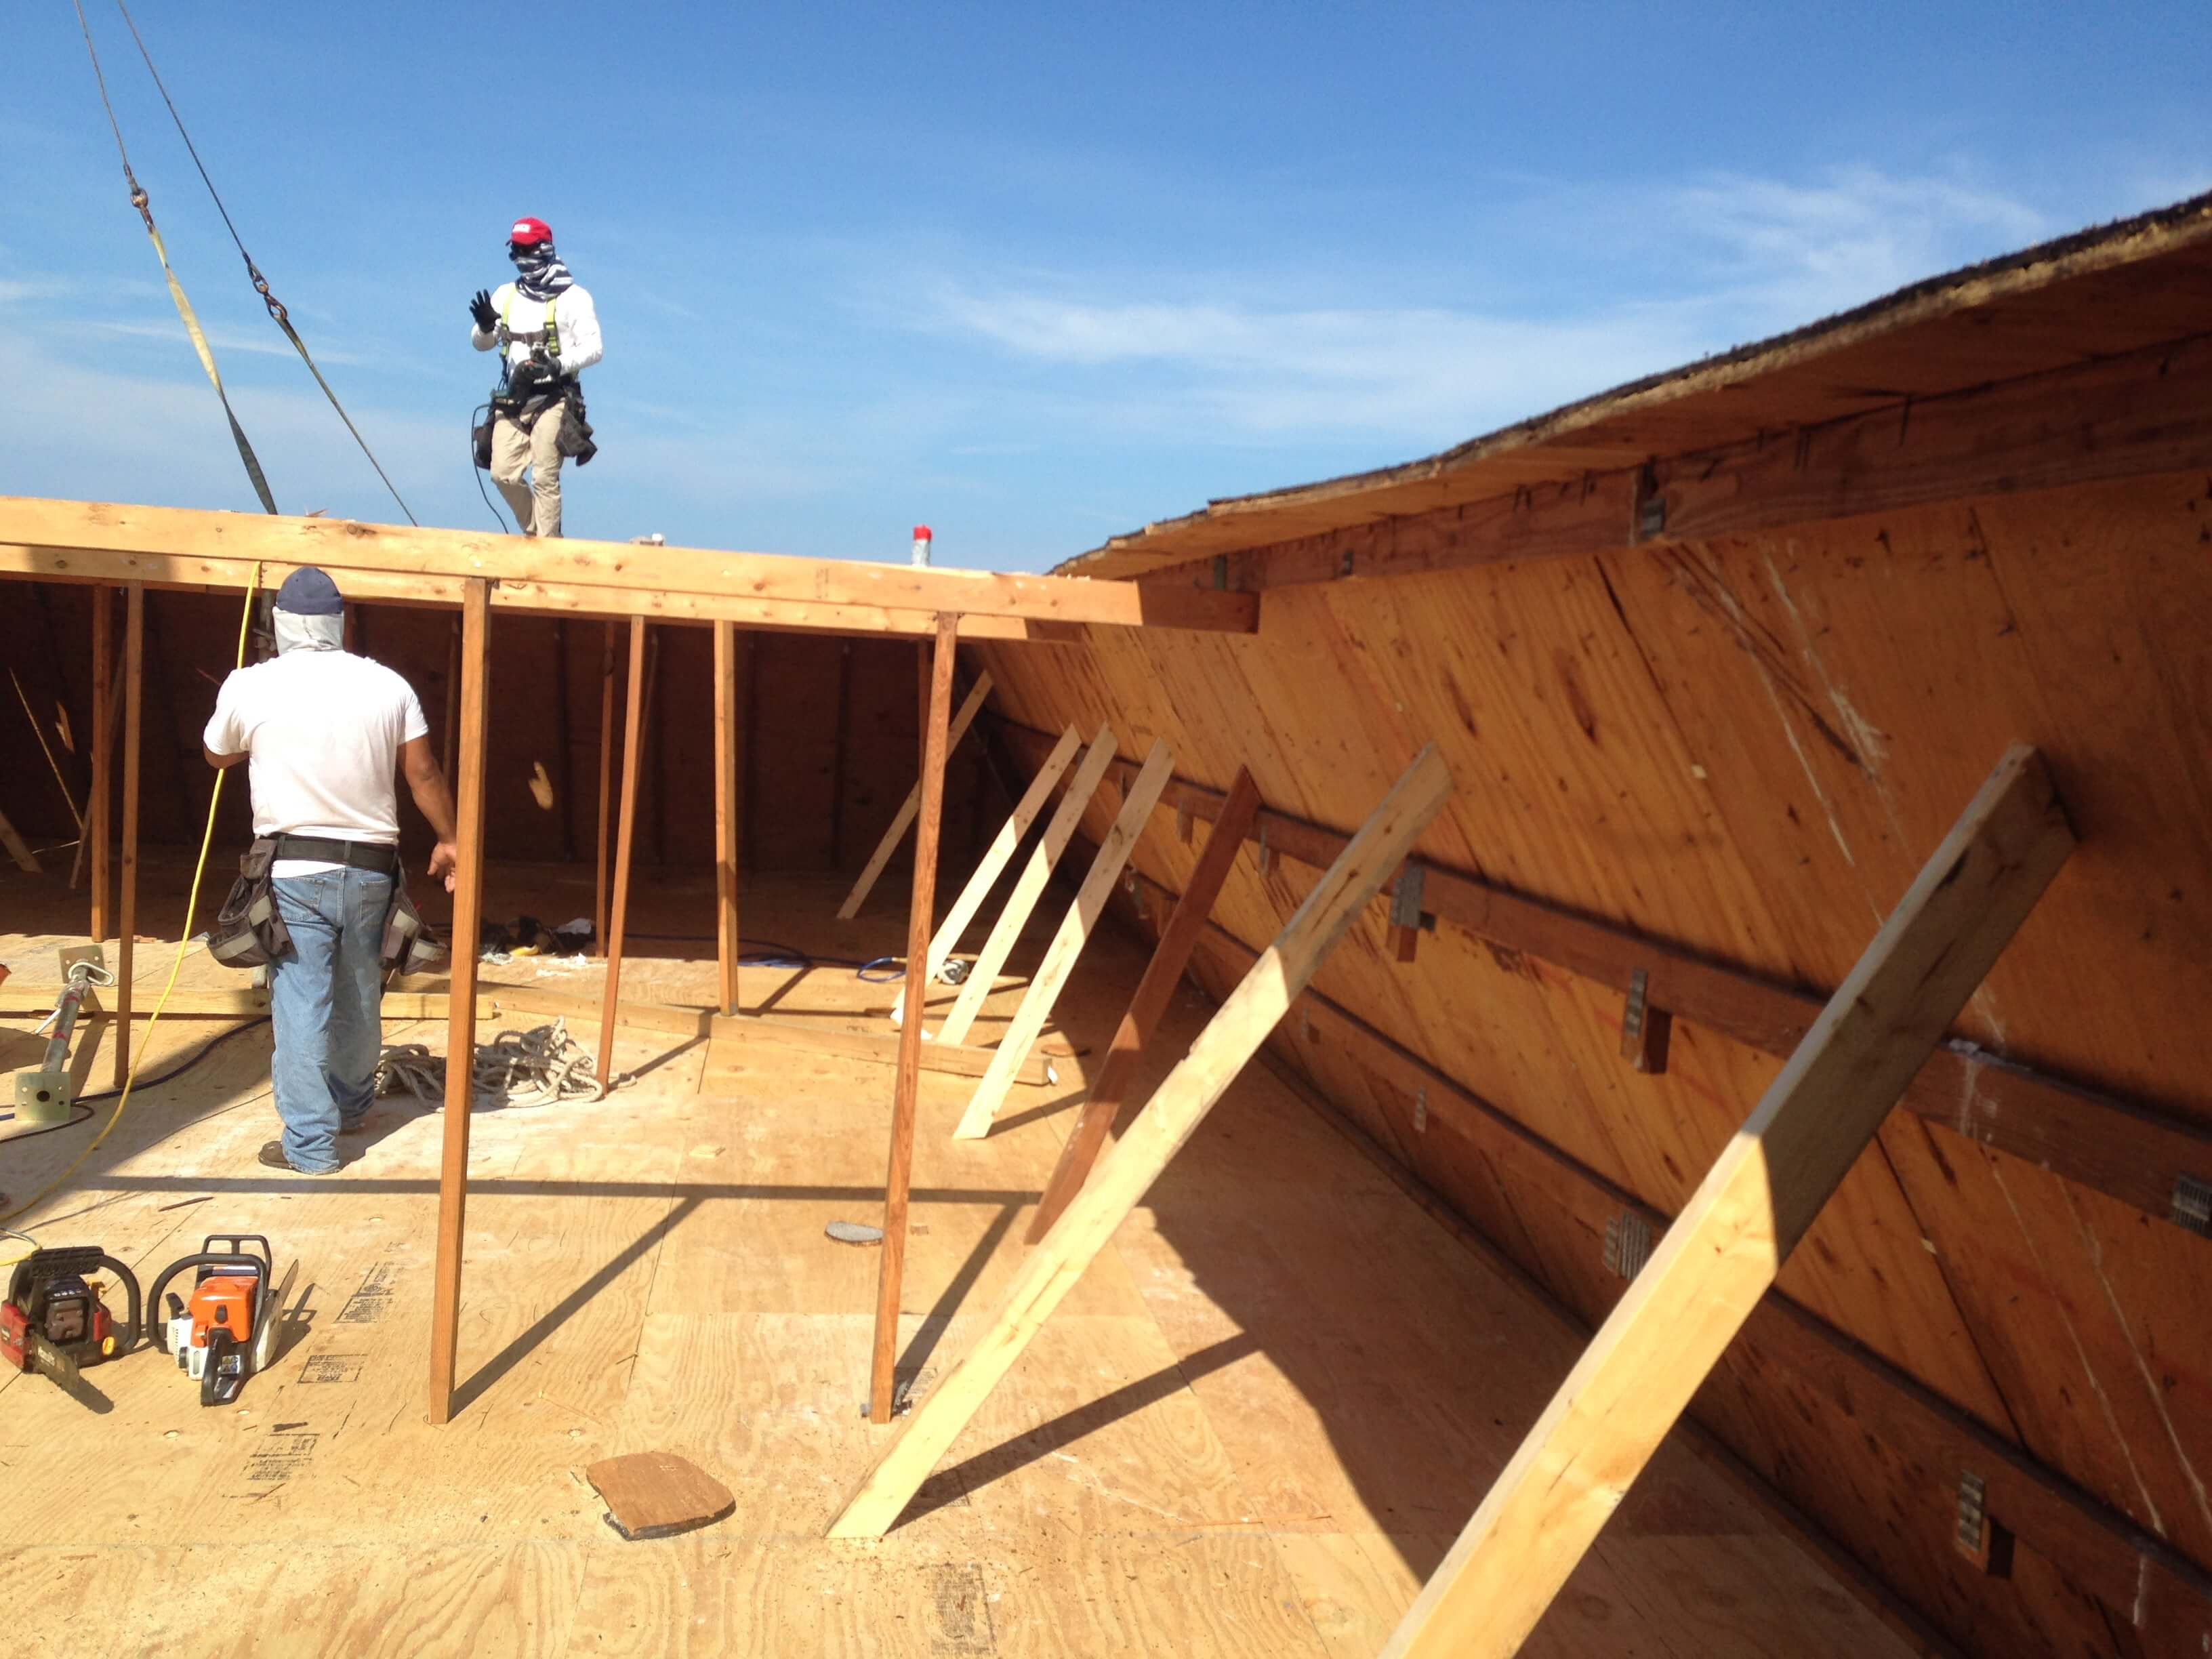 Roofers building wooden structure